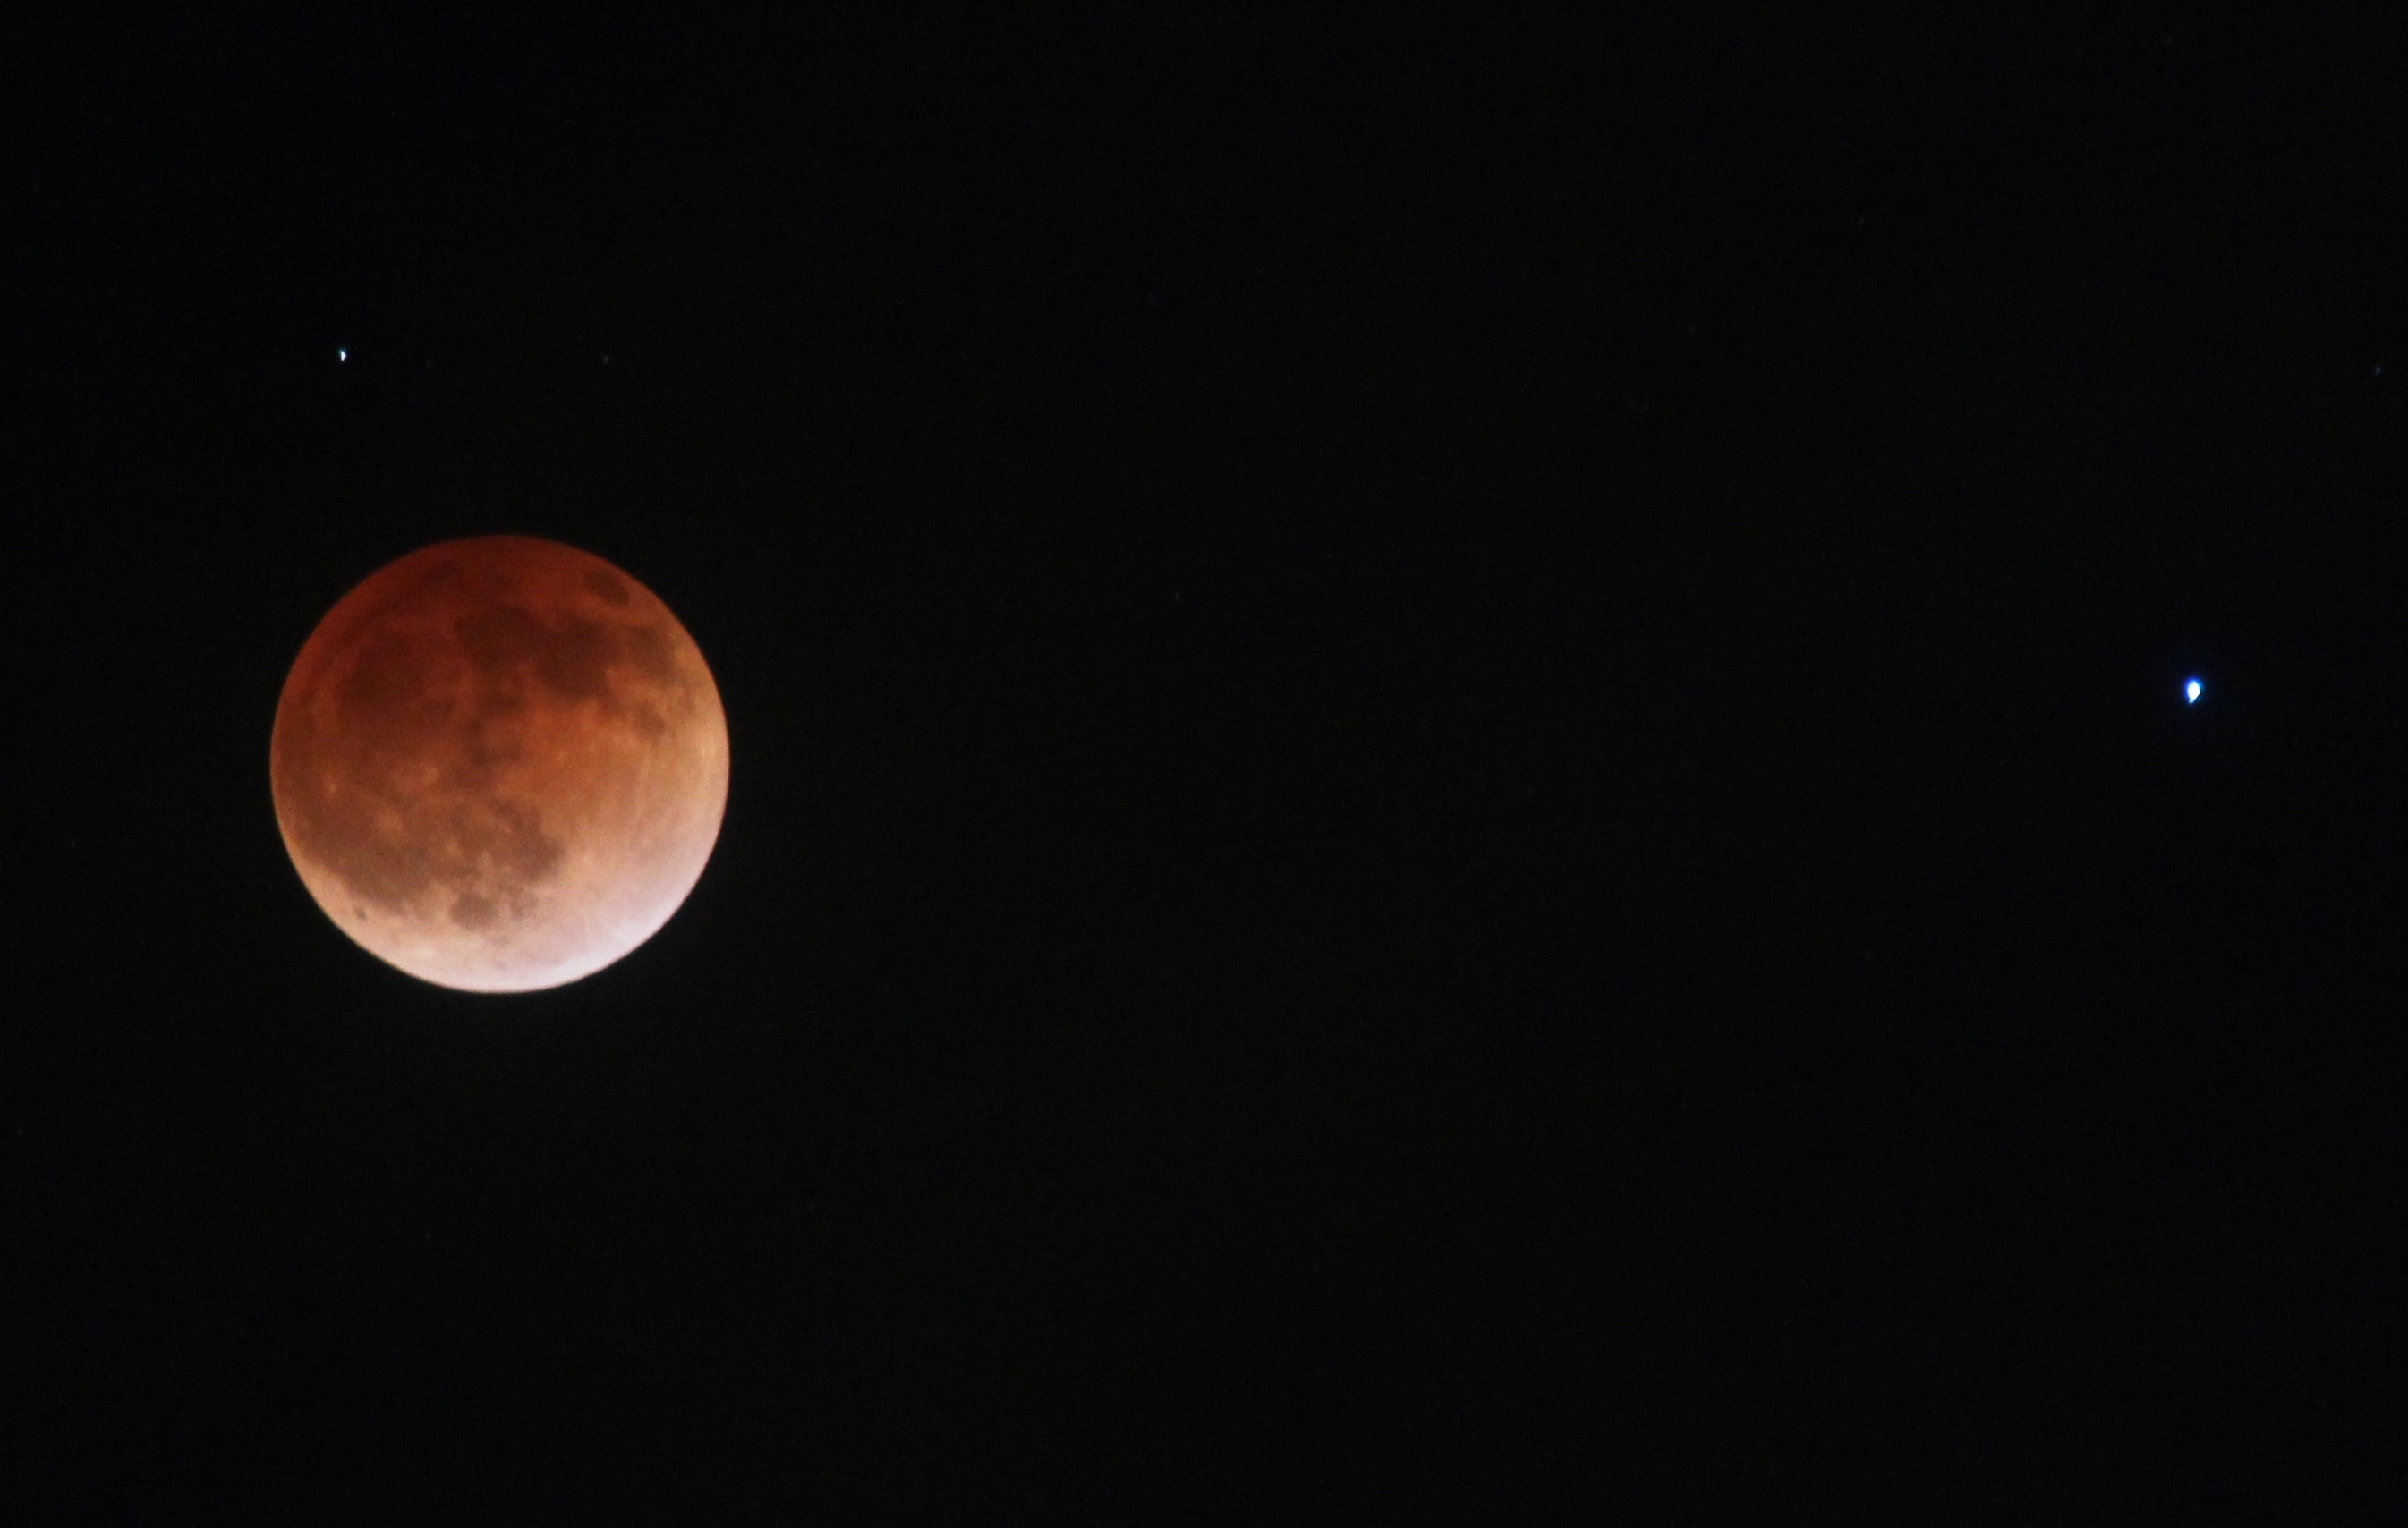 Mega hemorrhaging total lunar eclipse sept 27 28 2015 the mega hemorrhaging total lunar eclipse sept 27 28 2015 the planetary society pooptronica Image collections